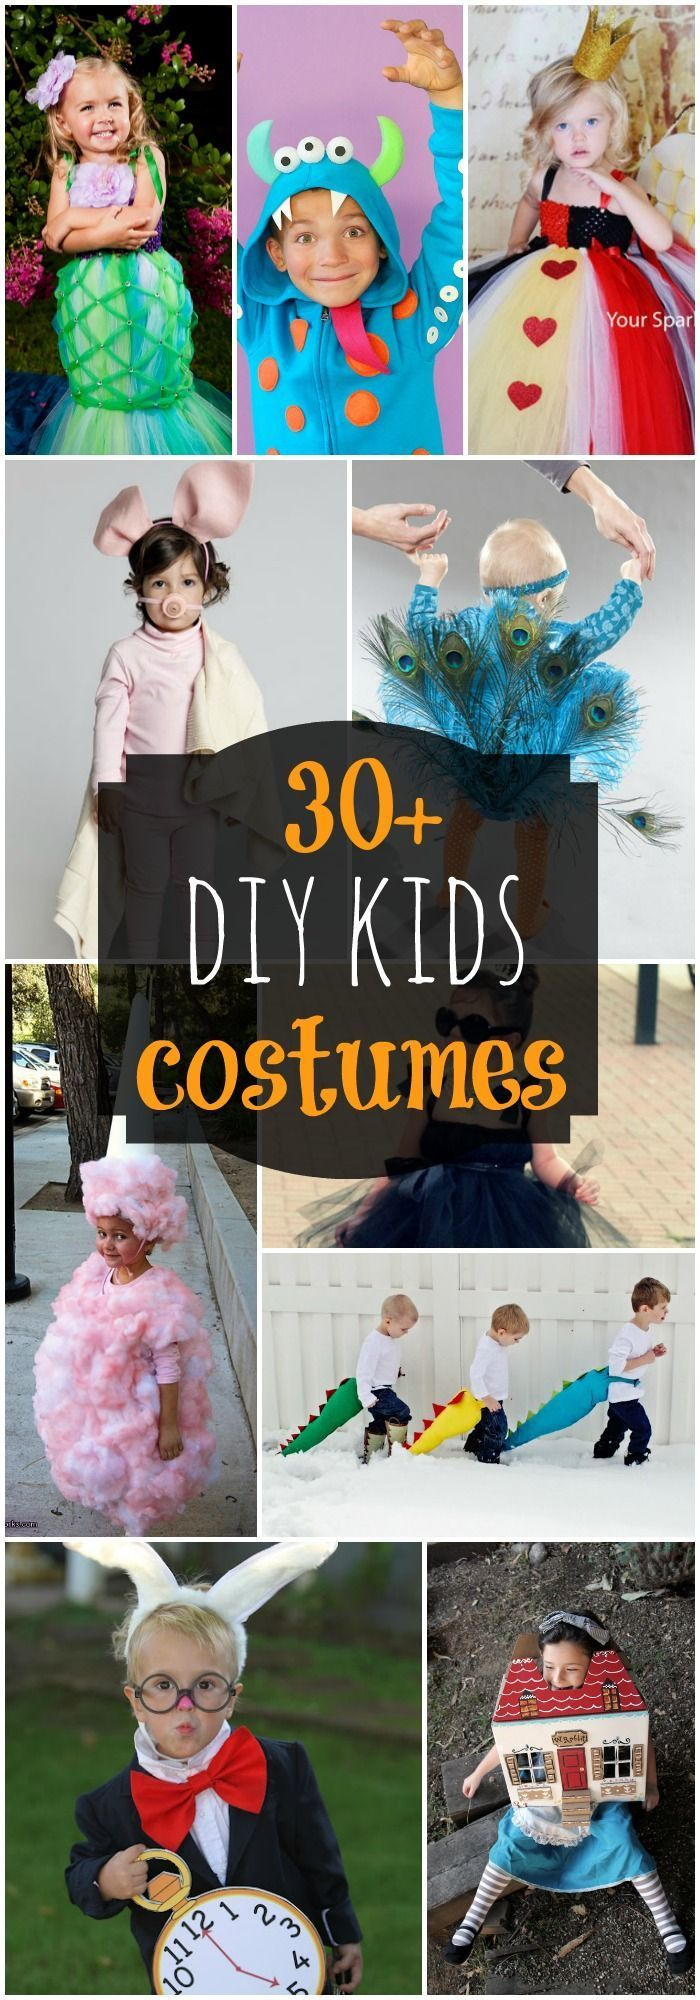 DIY costumes for kids! SO many adorable Halloween costumes that you can make for your kids!